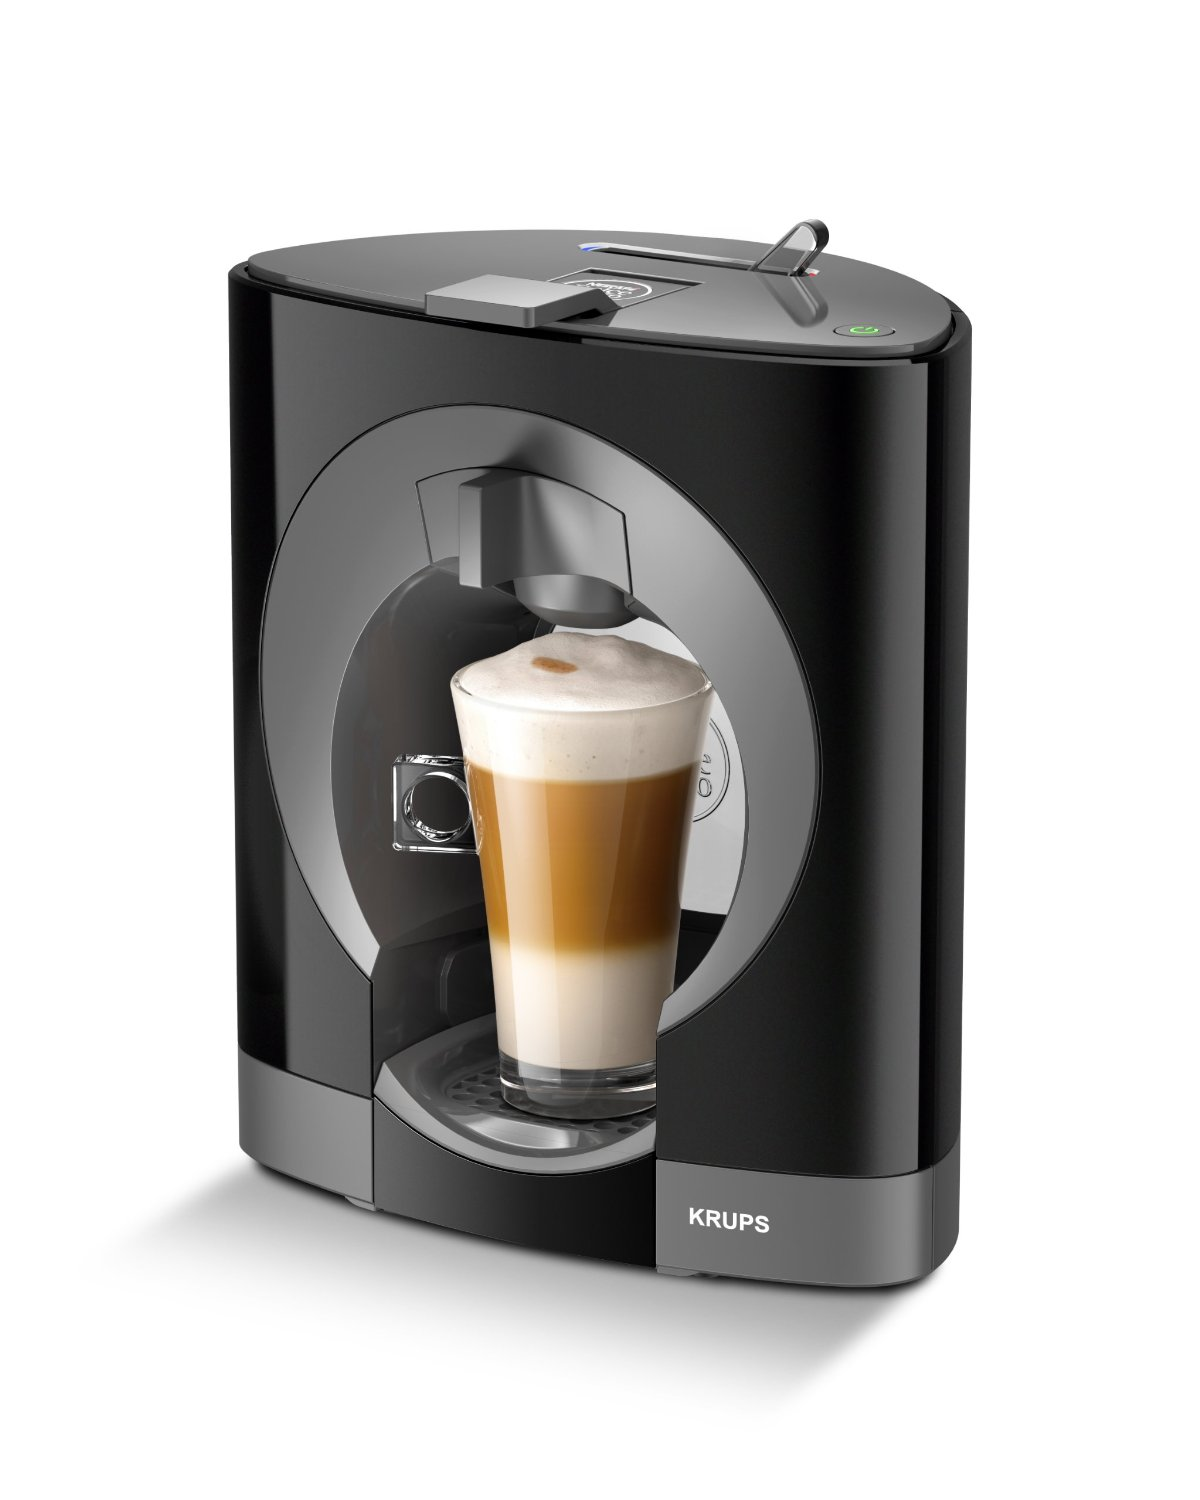 nescafe dolce gusto oblo coffee pod machine by krups. Black Bedroom Furniture Sets. Home Design Ideas